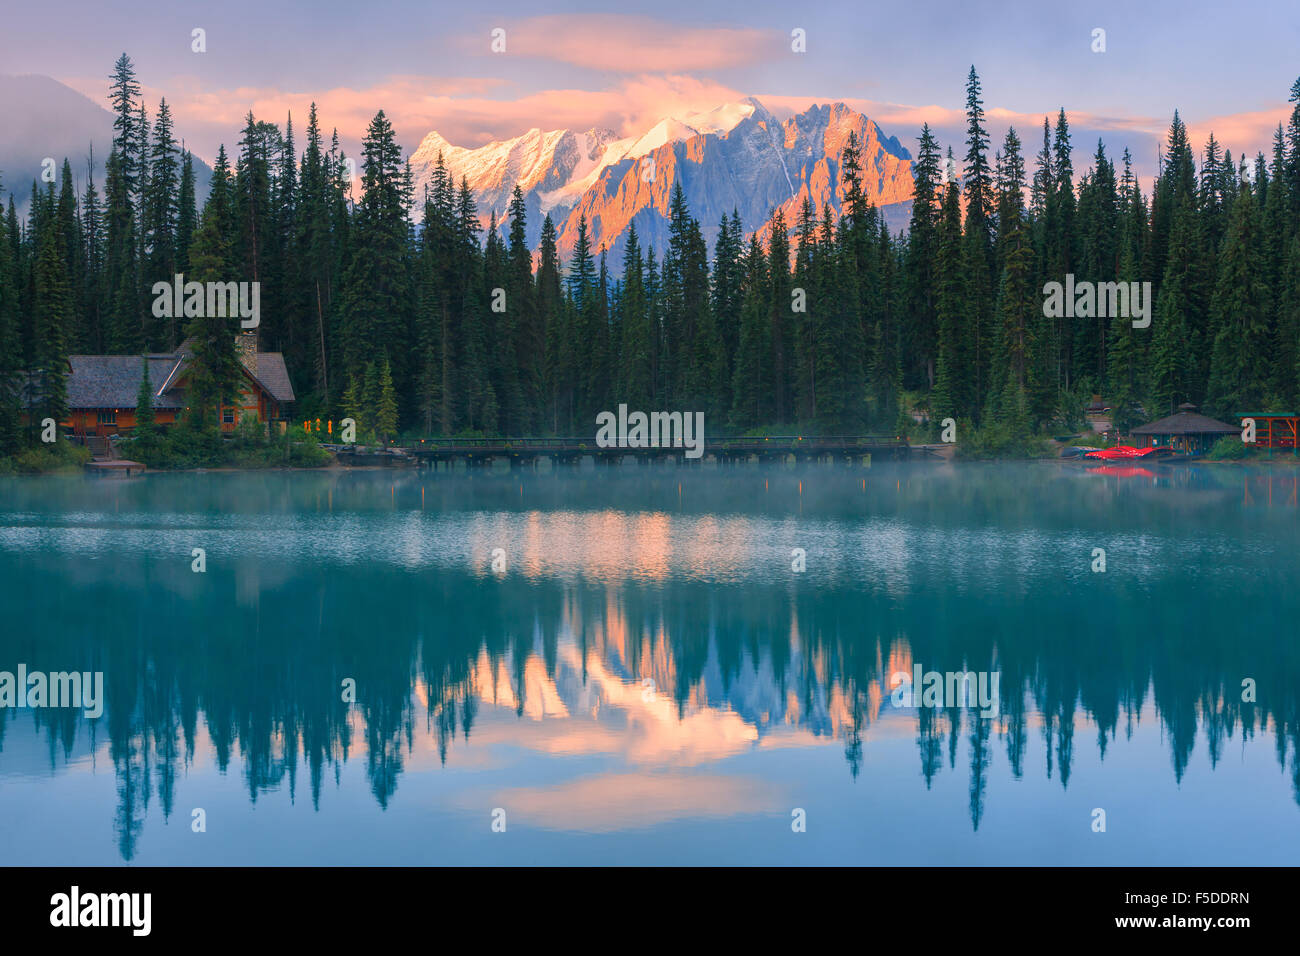 Sunrise Emerald Lake Im Yoho Nationalpark Britisch Kolumbien Kanada British Columbia Stockfotos Bilder Alamy